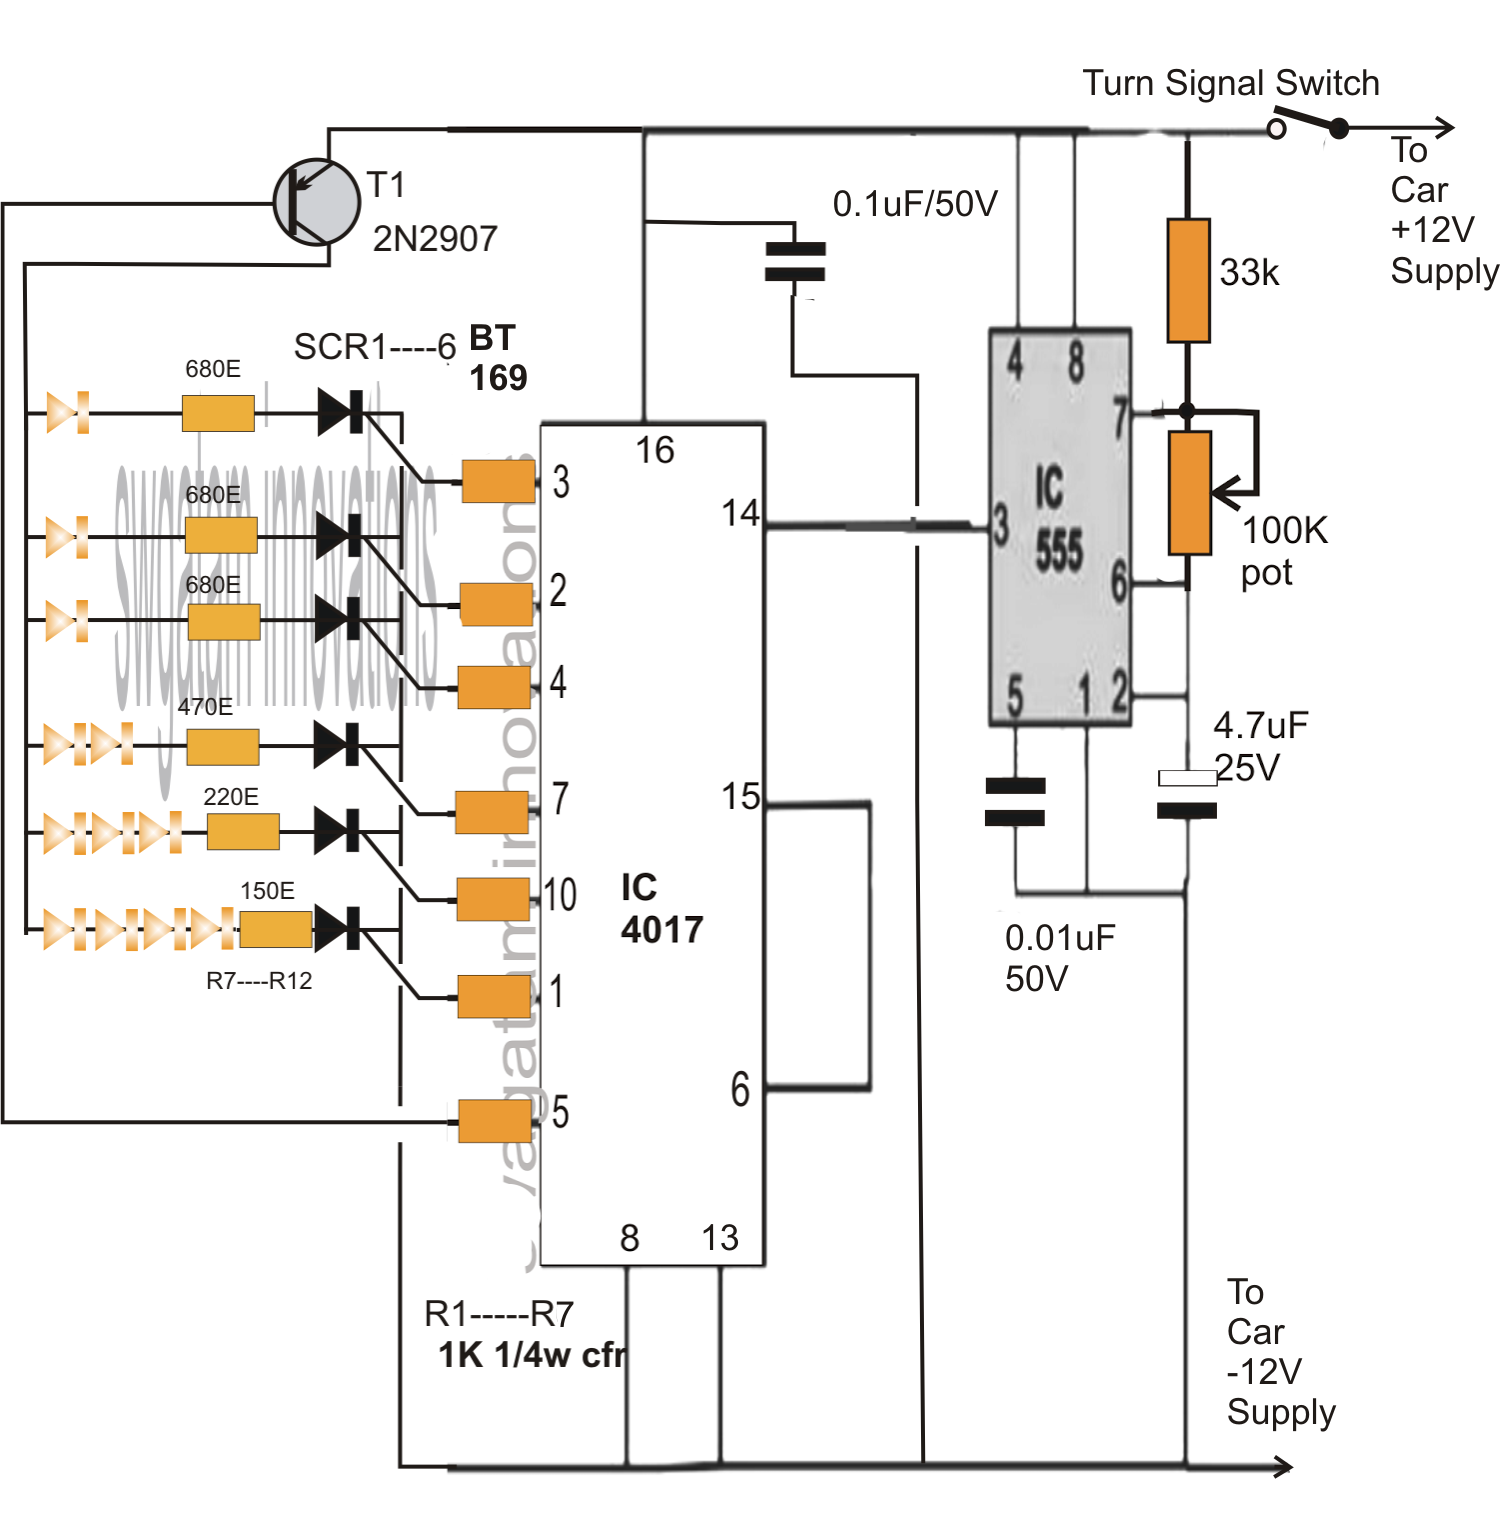 small resolution of sequential bar graph turn light indicator circuit for car electronic turn signal flasher circuit turnsignal flasher schematic symbol